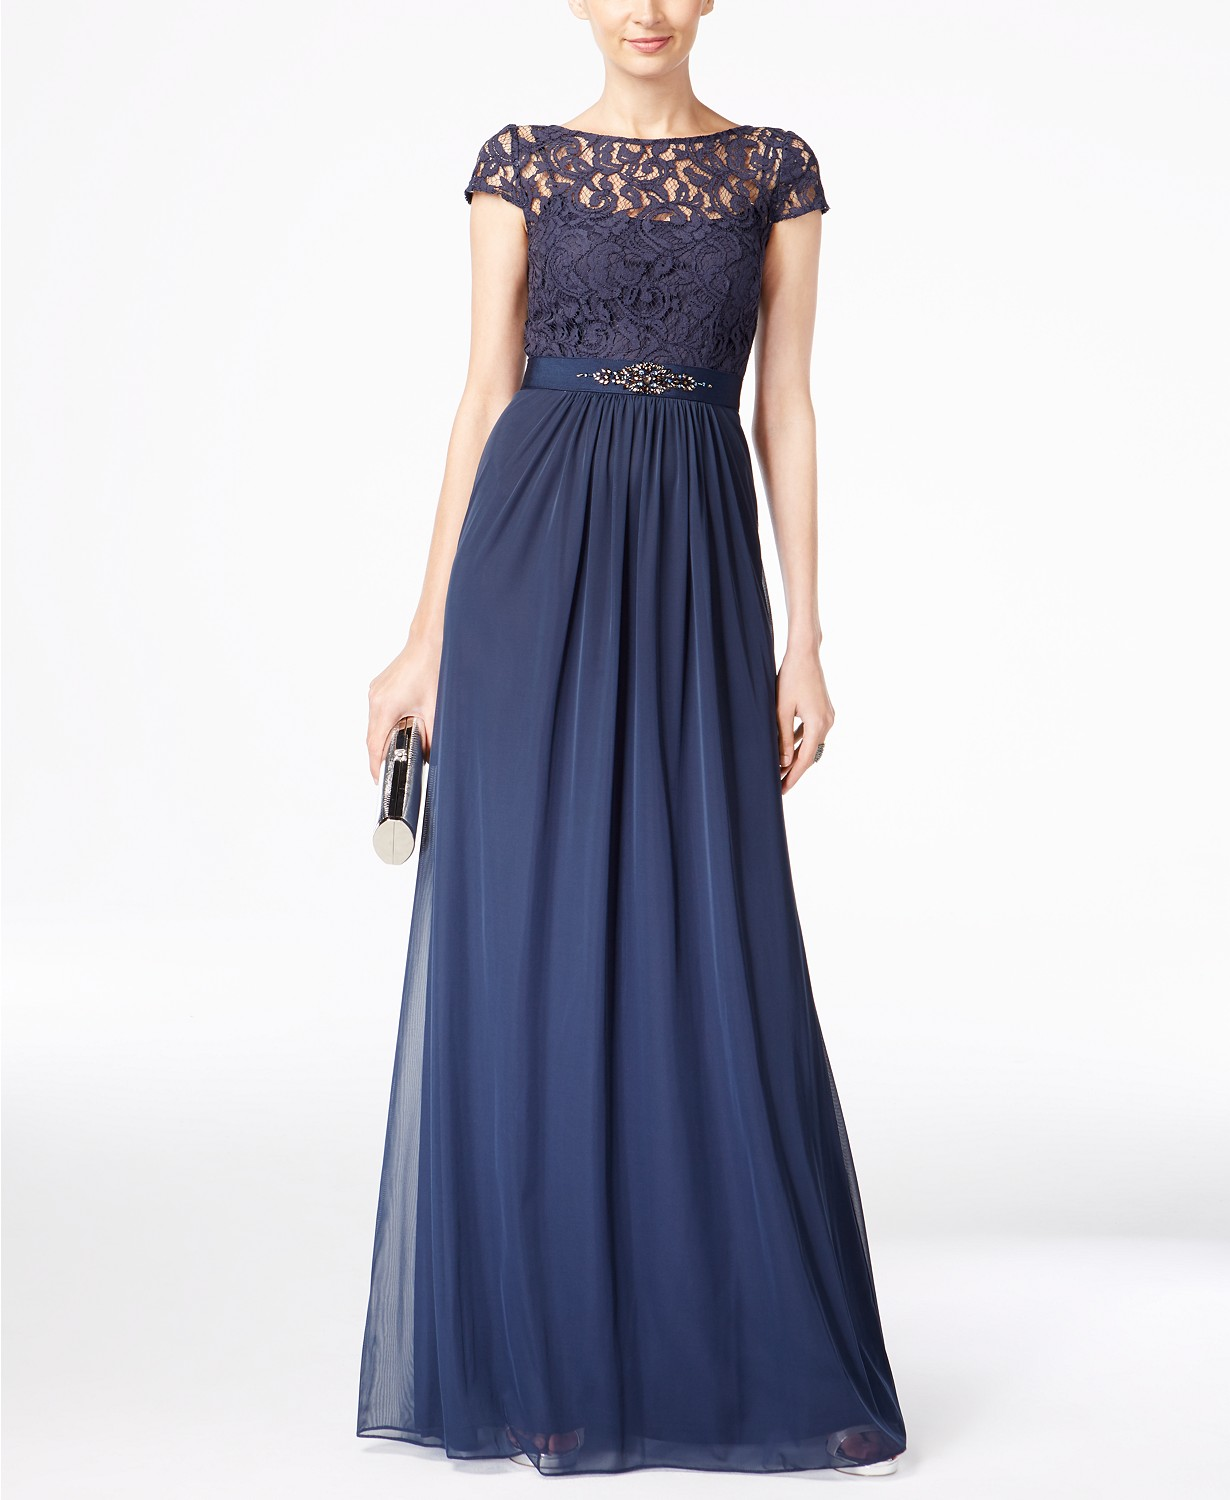 Adrianna Papell midnight blue formal gown with illusion lace and elegant accents.